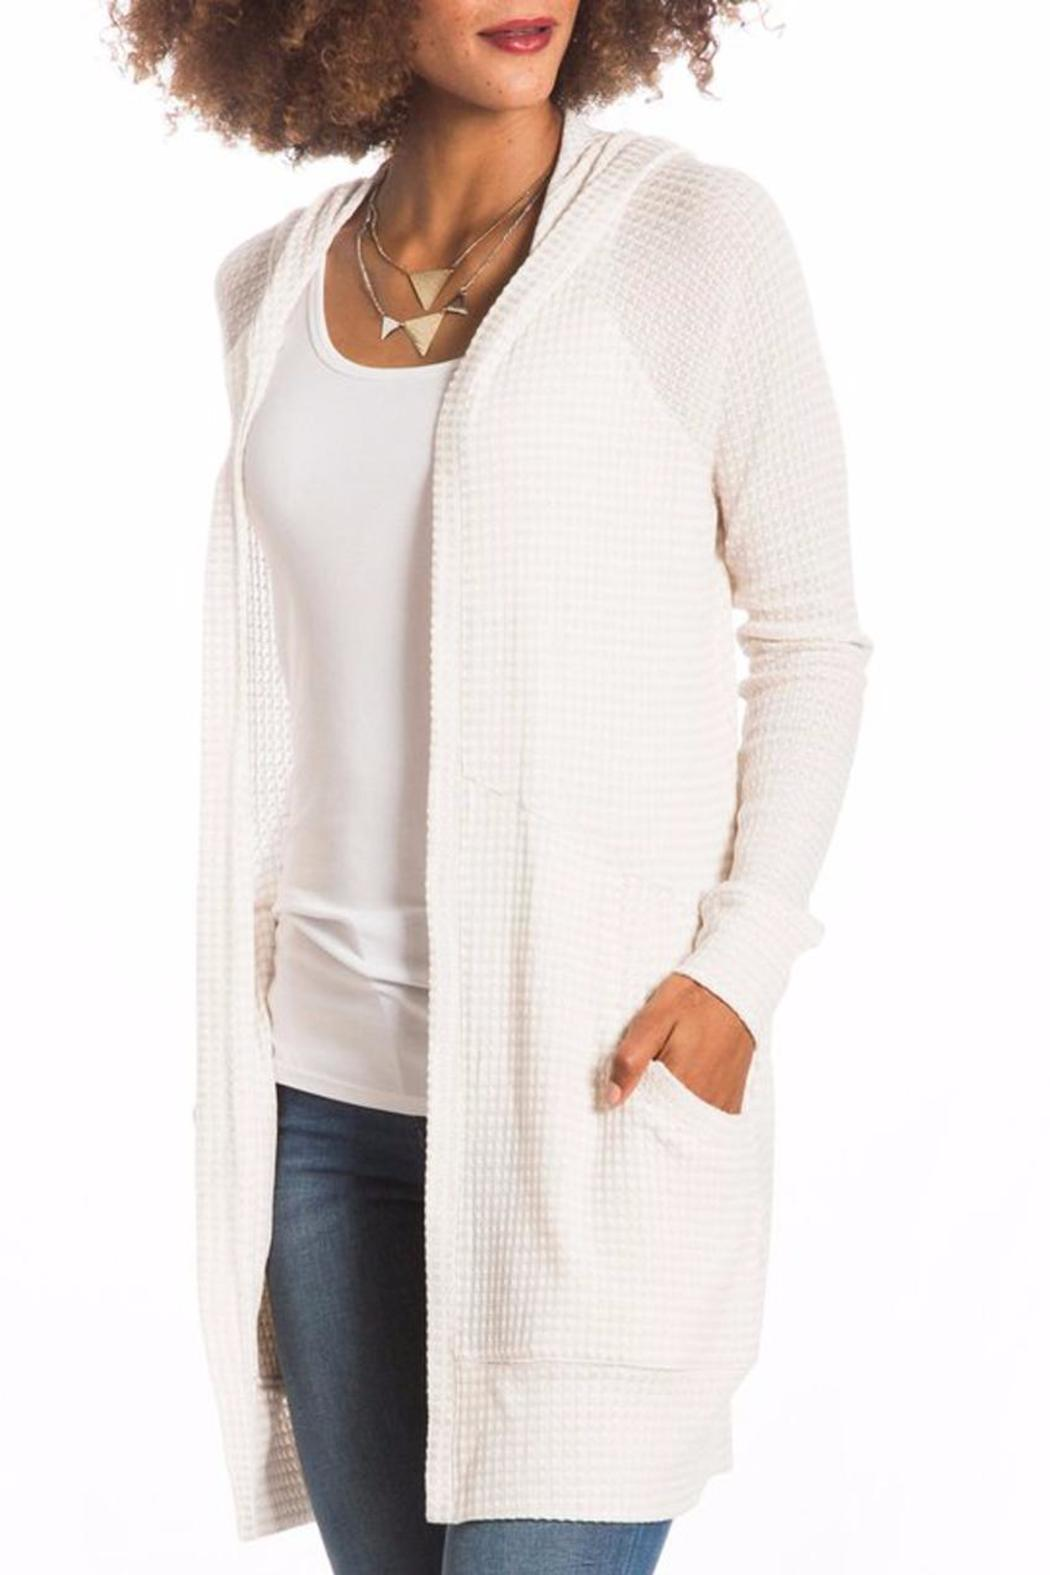 LOVE ON A HANGER Off White Cardigan from California by Maple ...